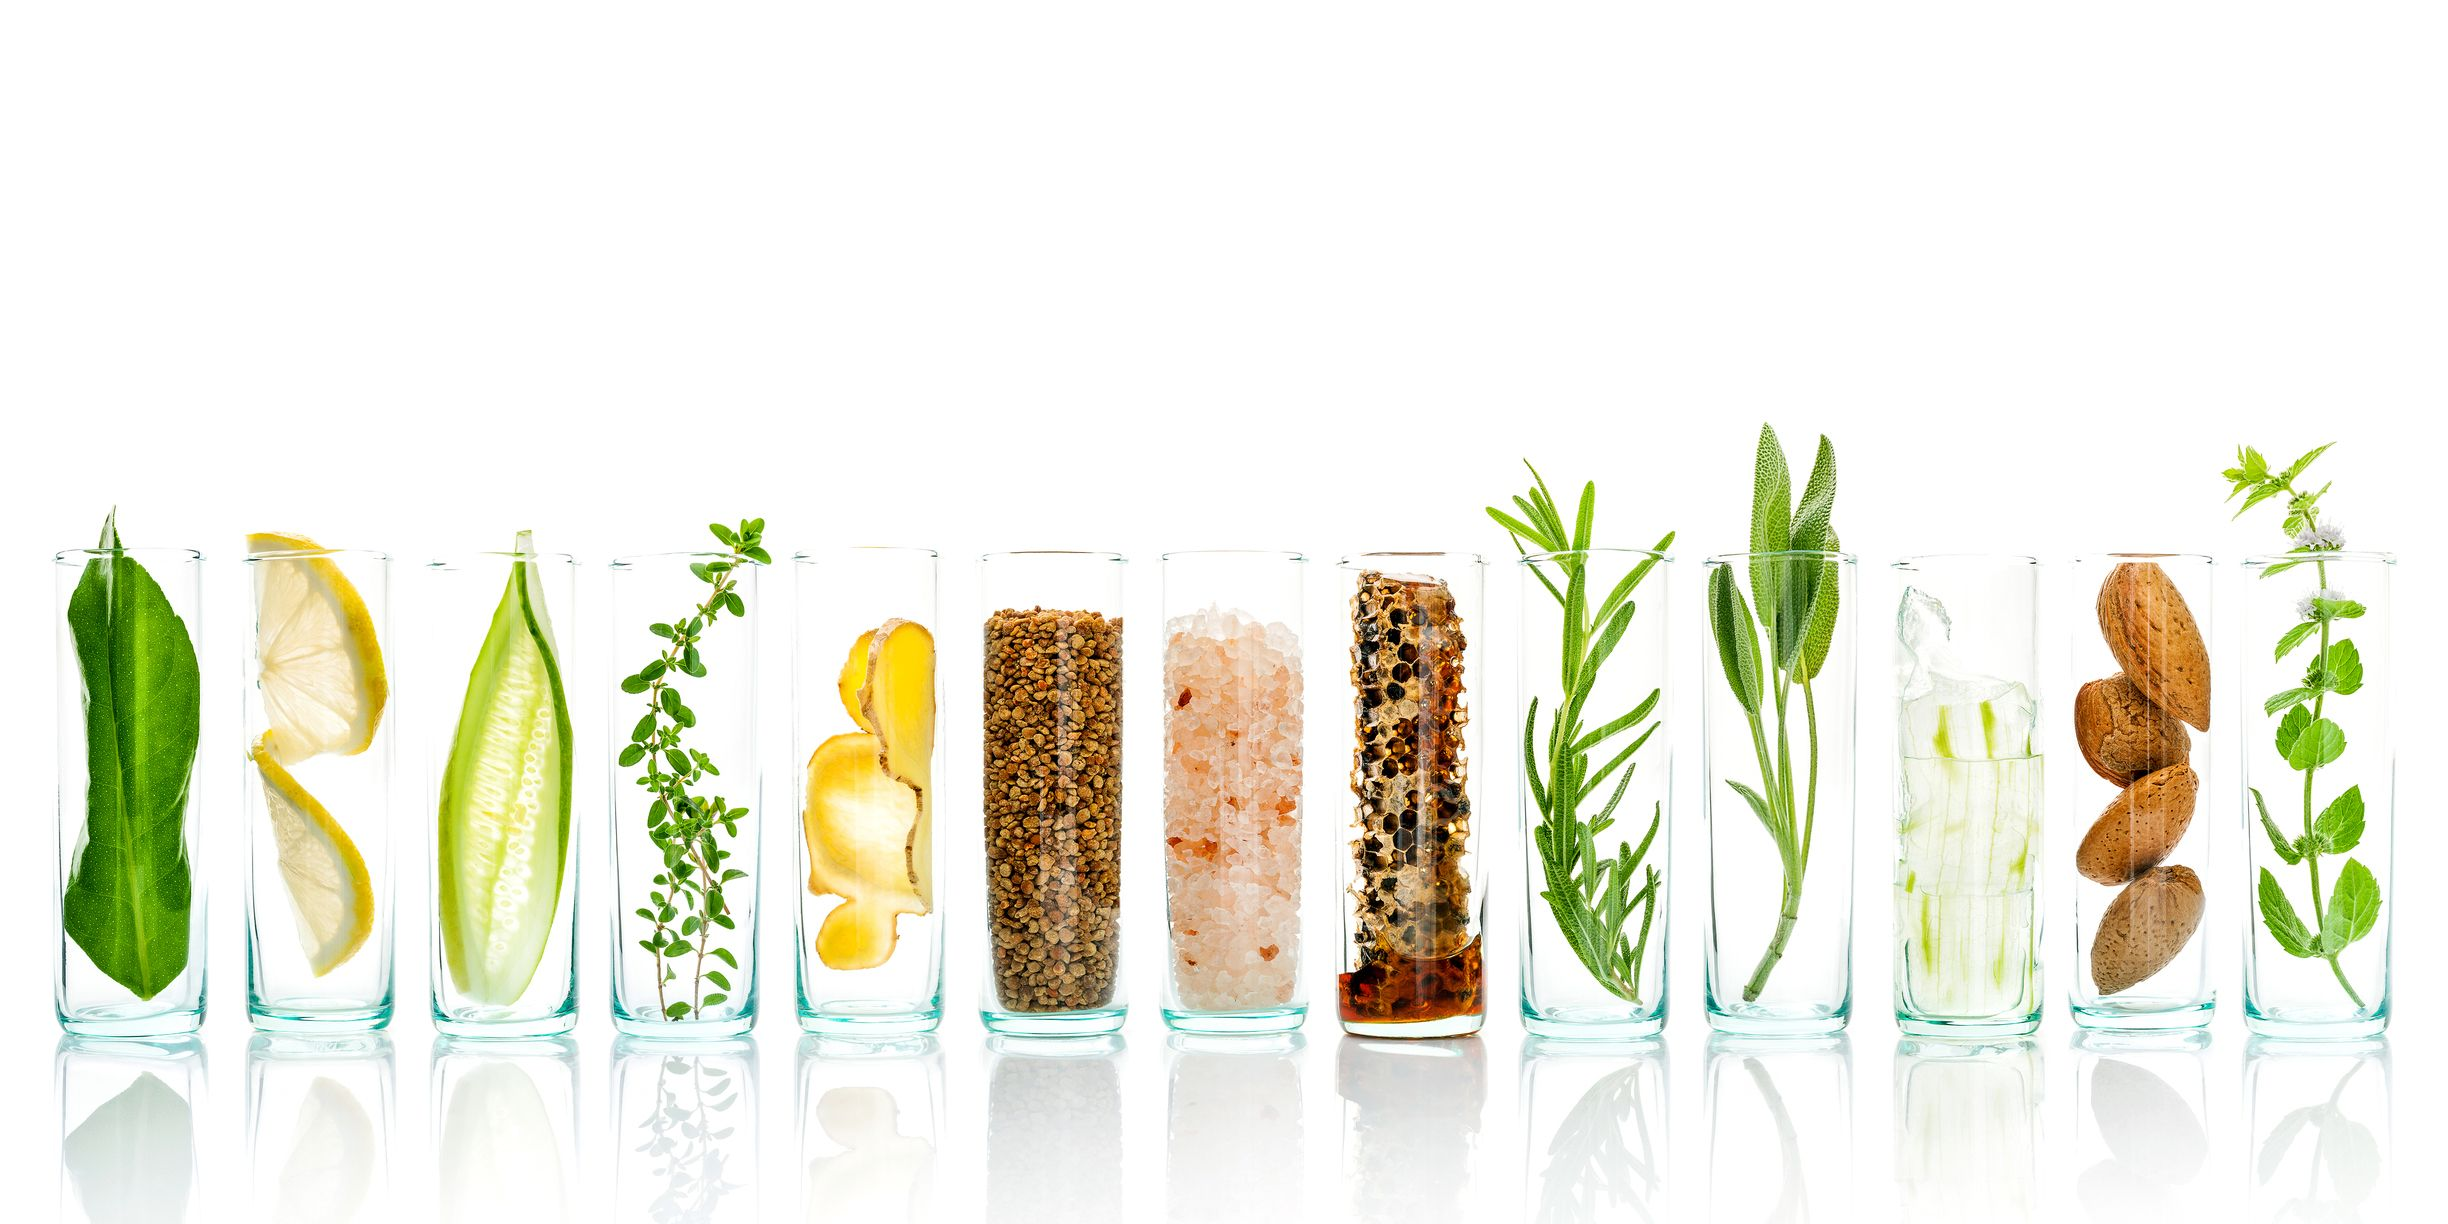 Top 5 Ingredients For Aging Skincare What To Include And Combine Herbal Skin Care Homemade Skin Care Natural Skin Care